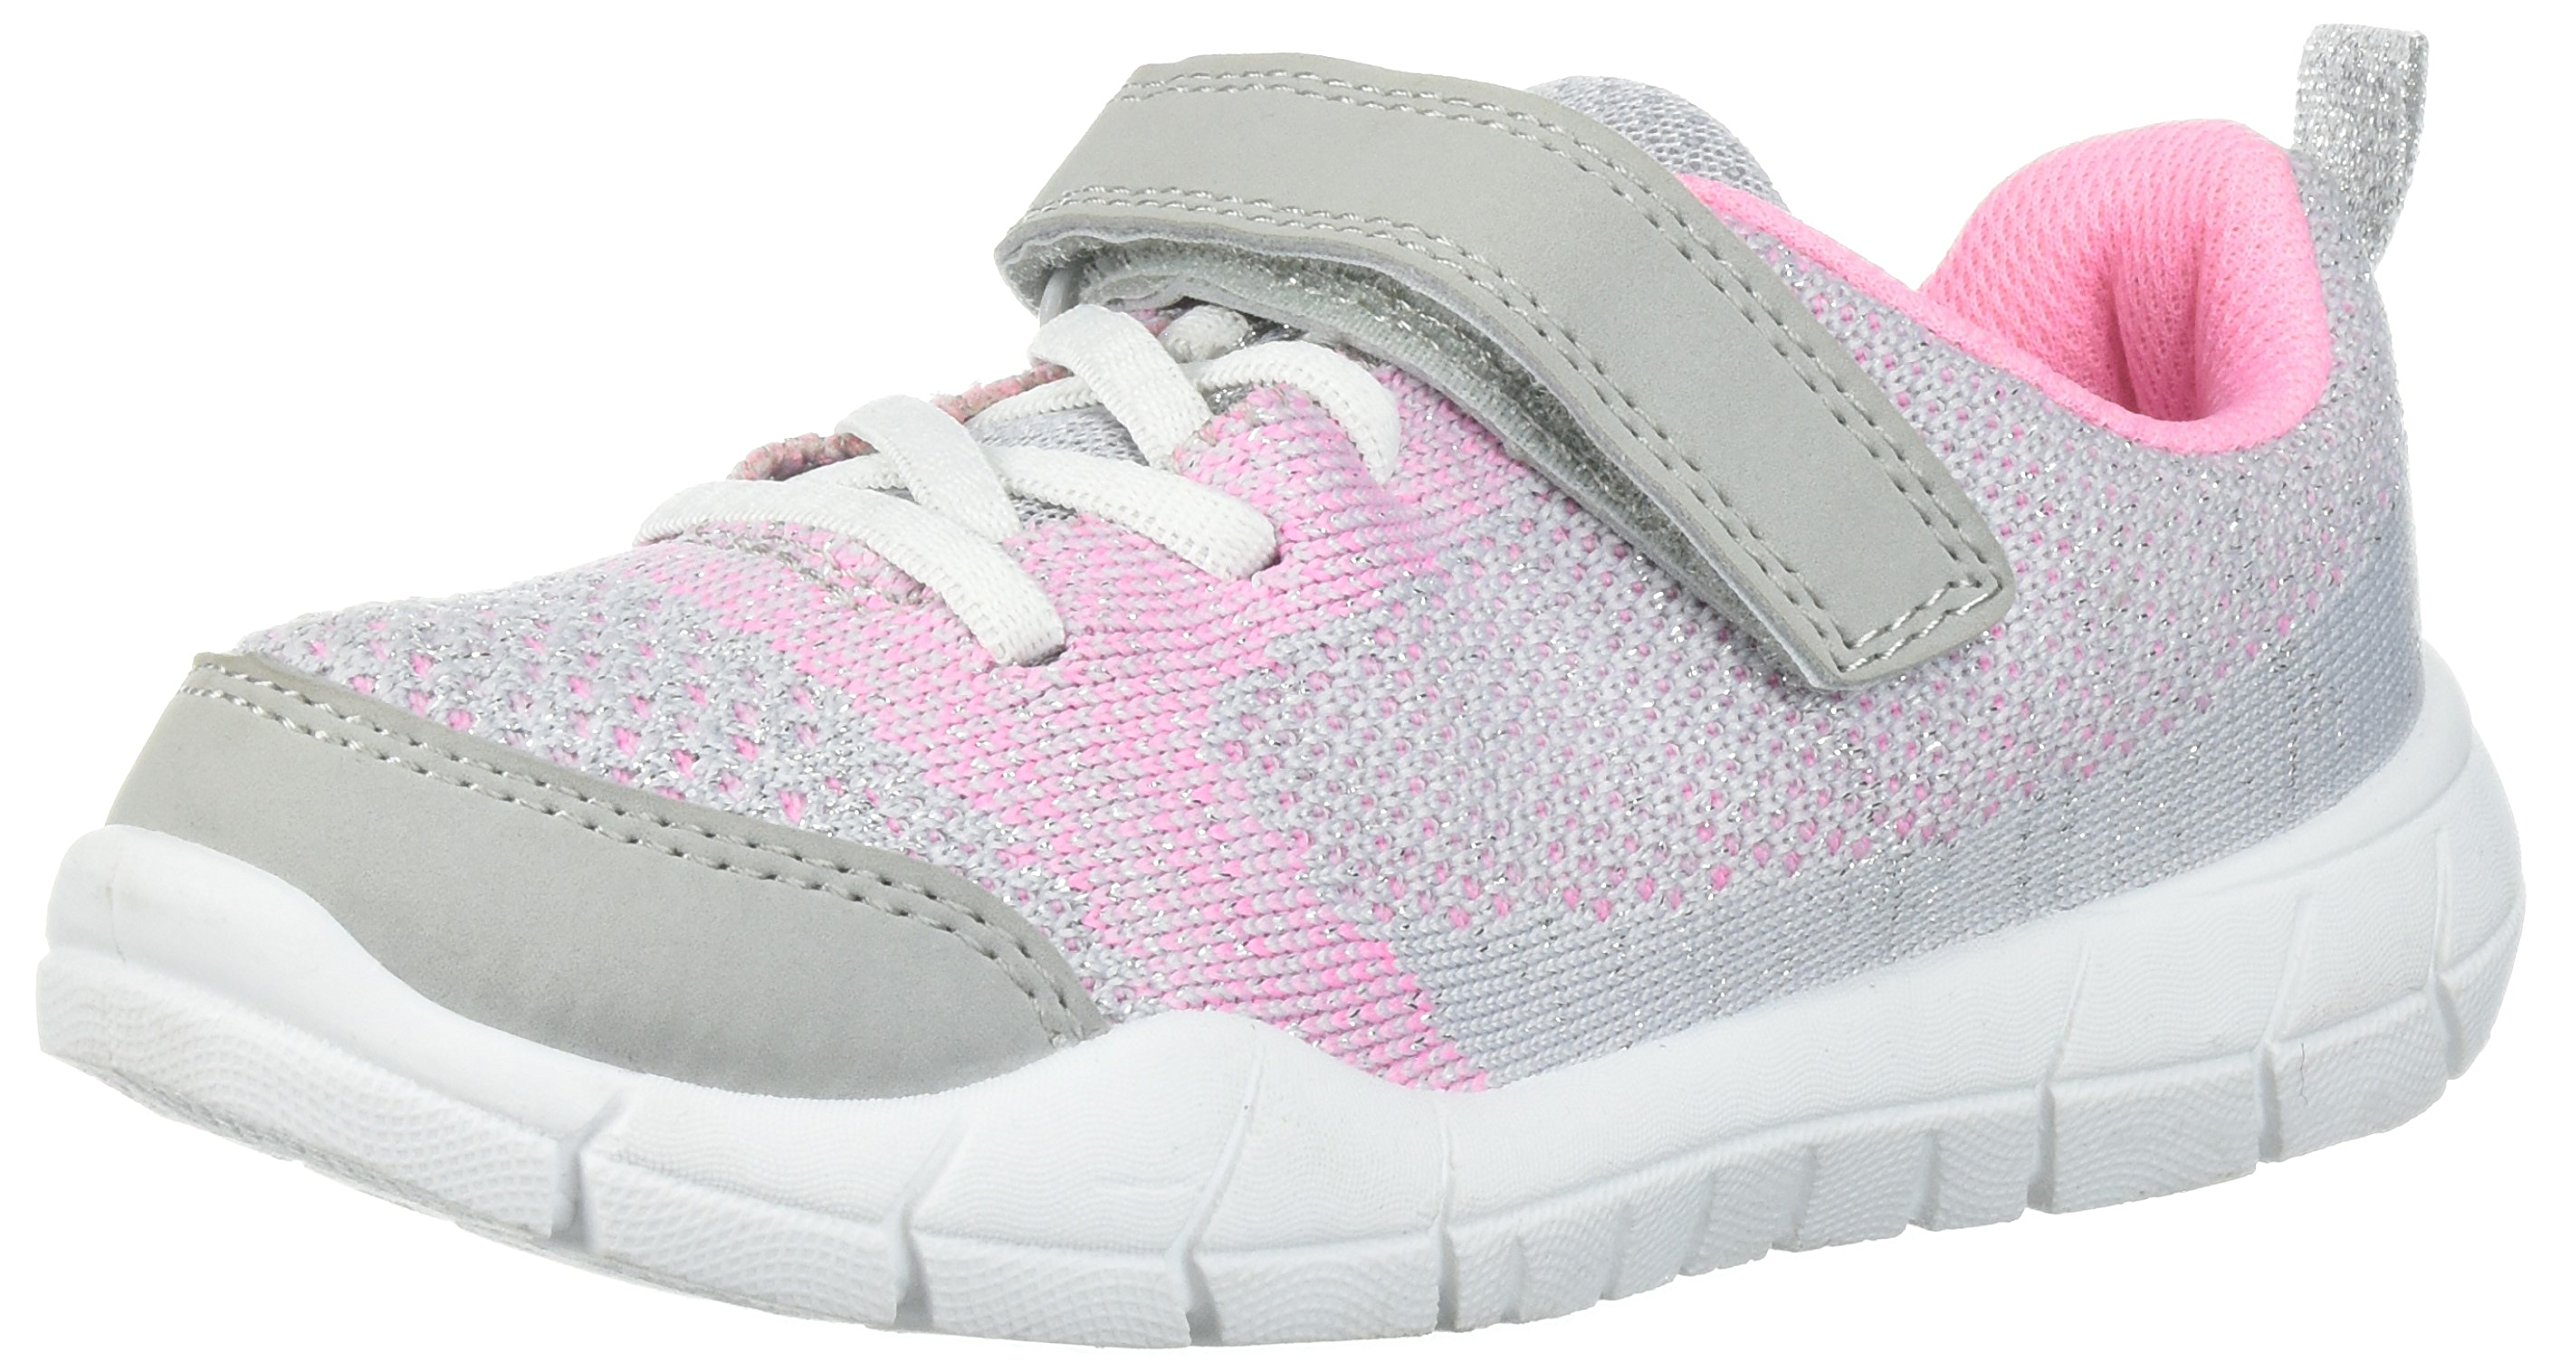 Carter's Baby Ultrex Boy's and Girl's Lightweight Sneaker, Silver, 10 M US Toddler